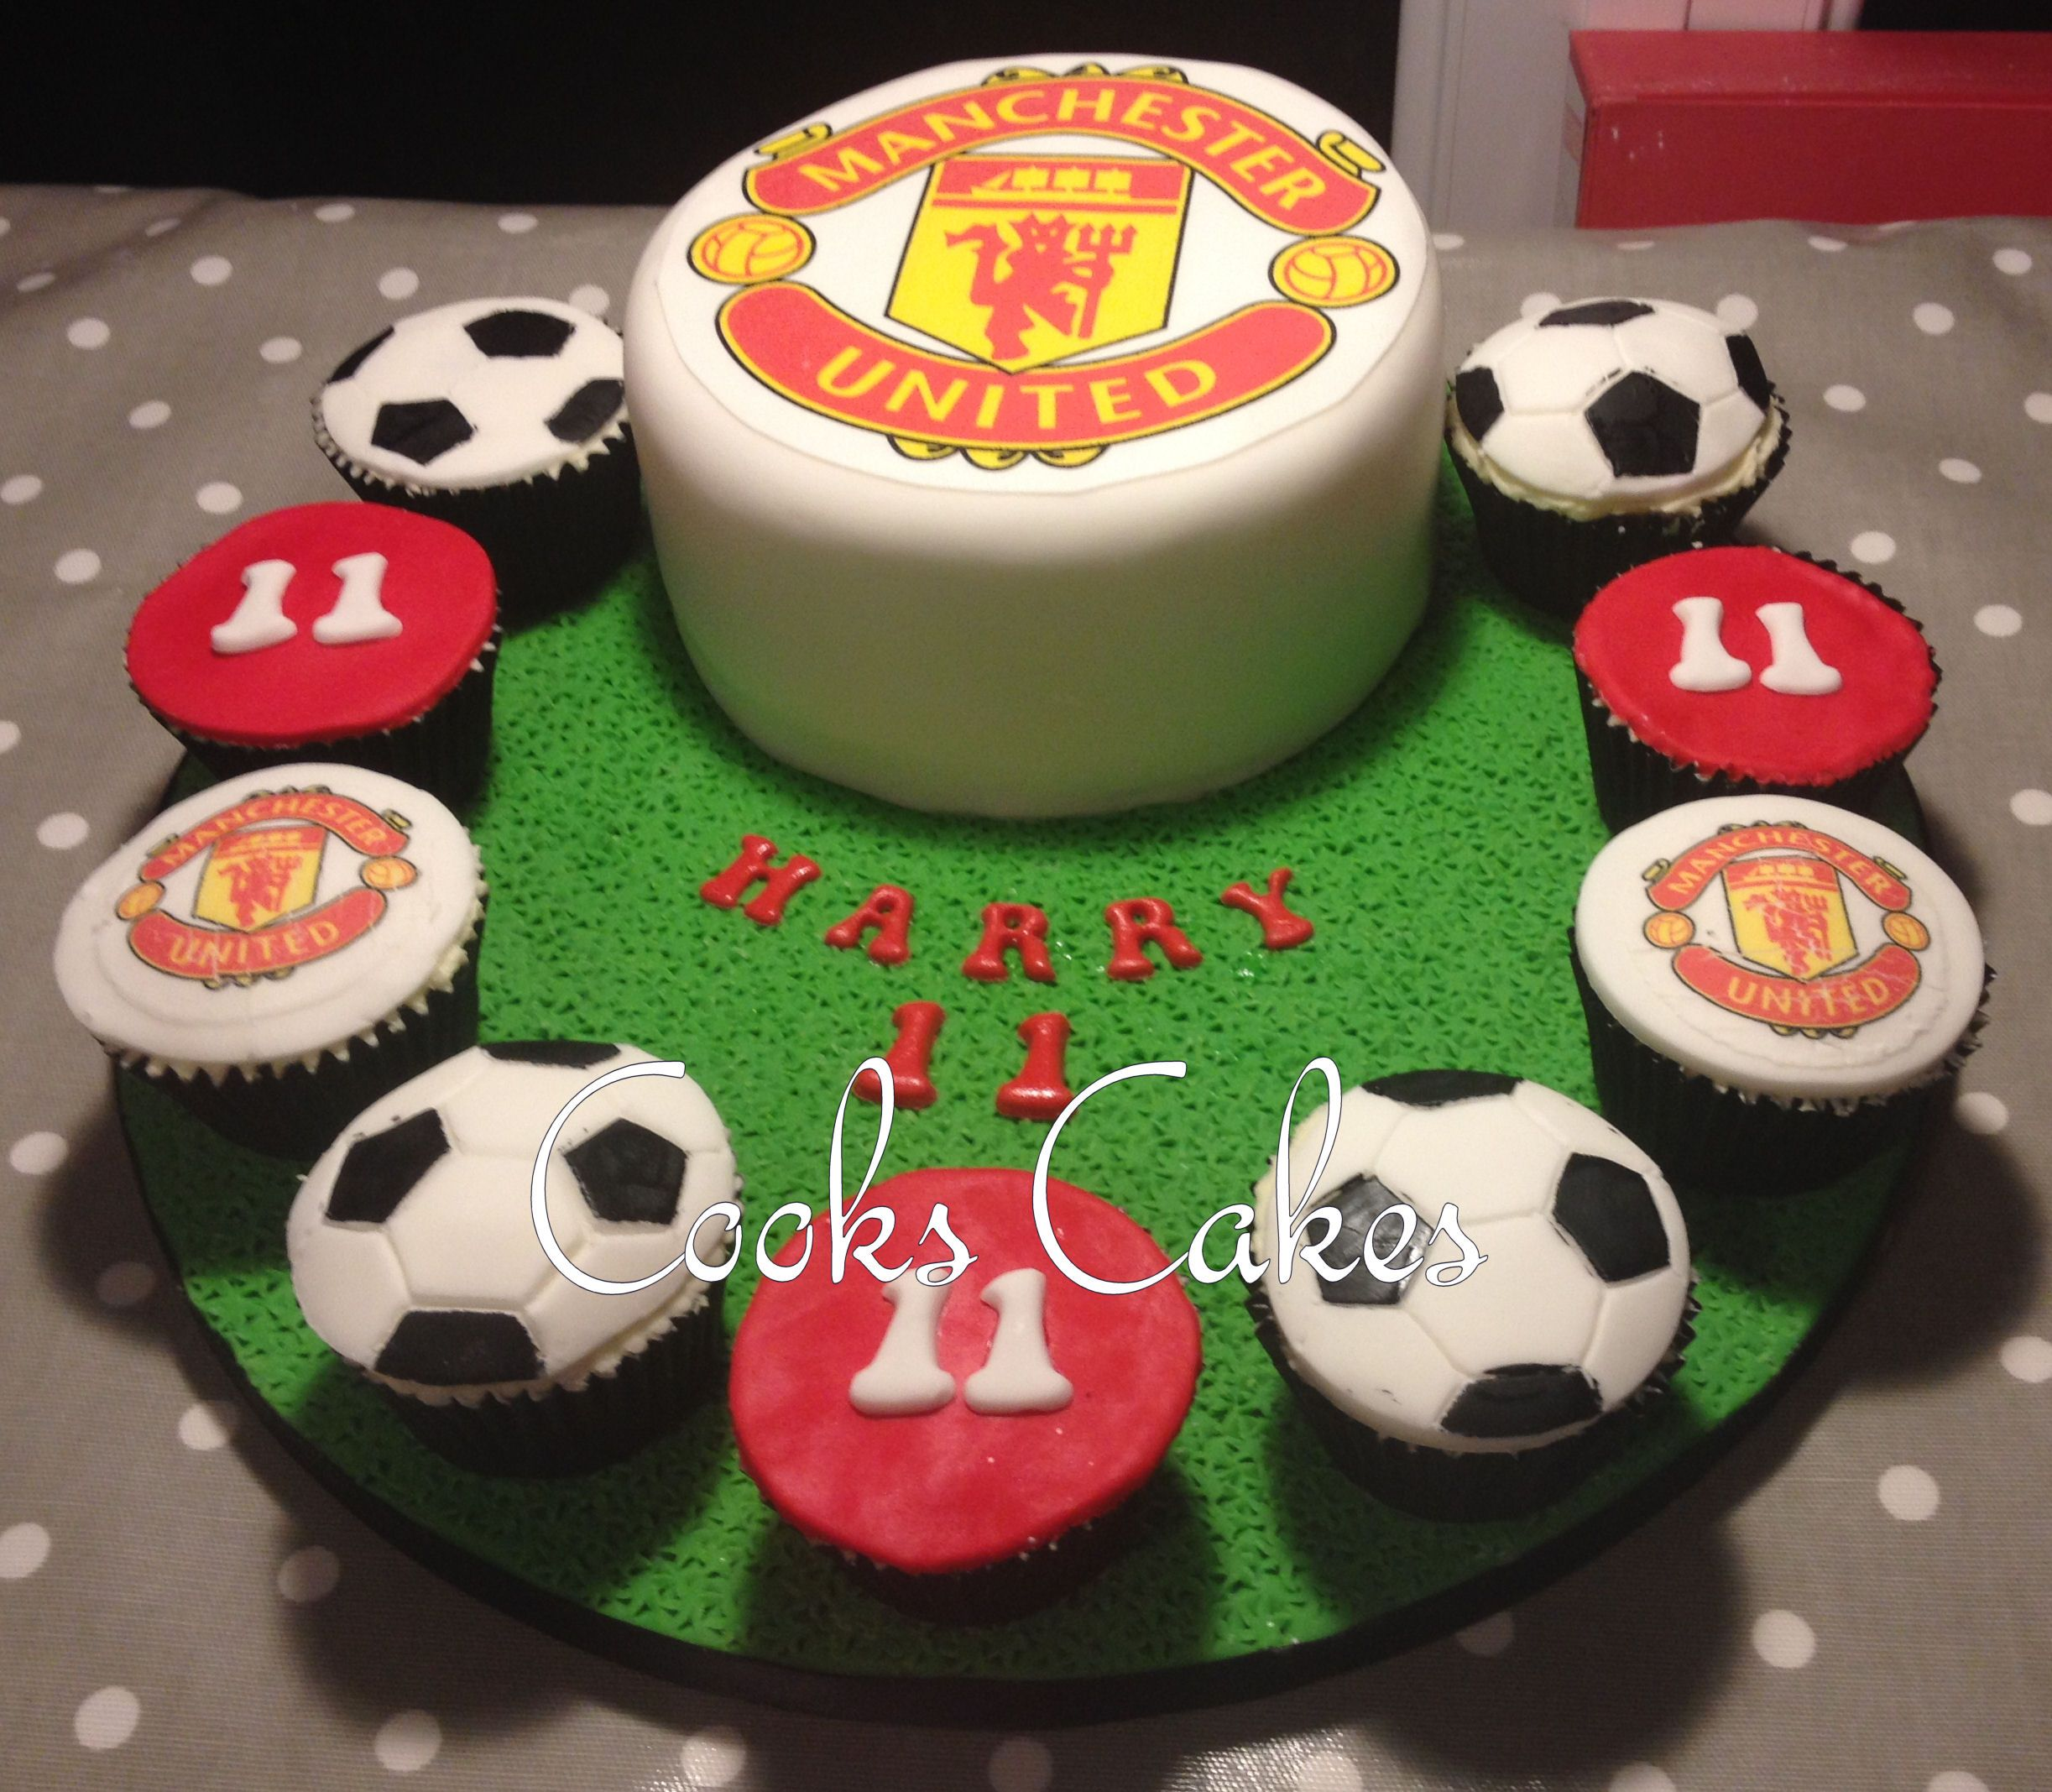 Pin By Halle Coretti On Cook S Cakes Football Cake Manchester United Cake Cake